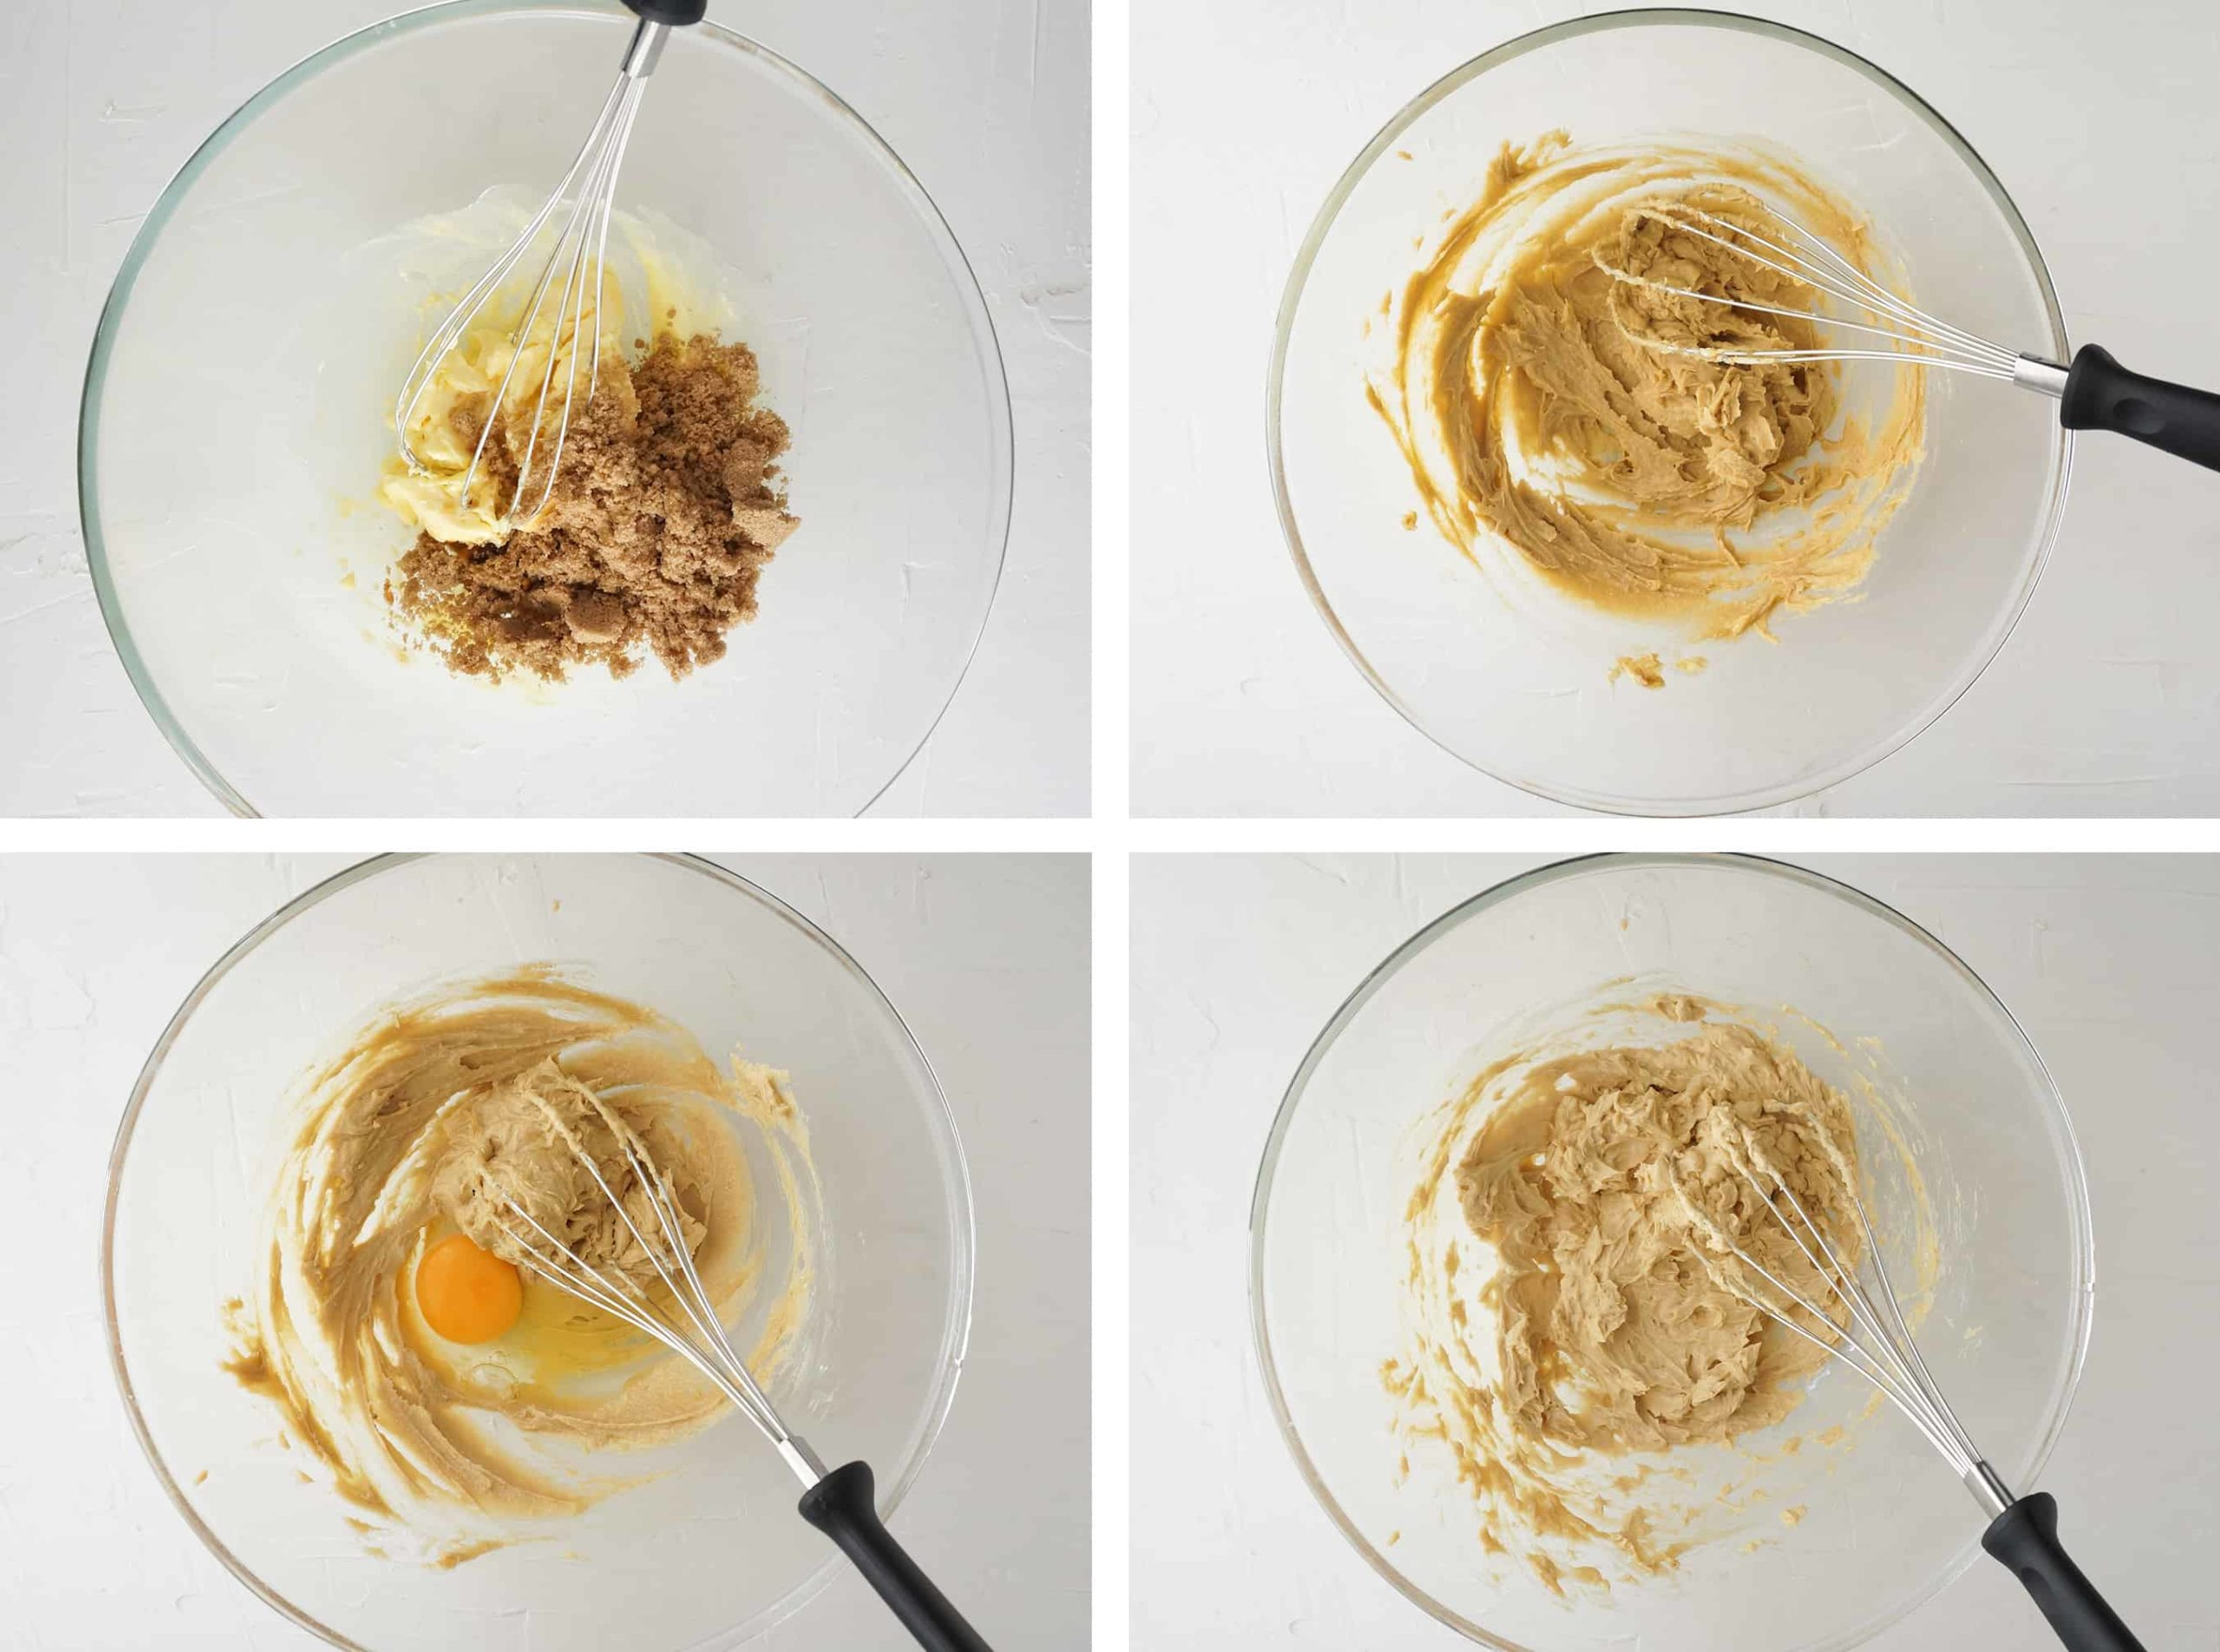 process photos of creaming butter, sugar and eggs